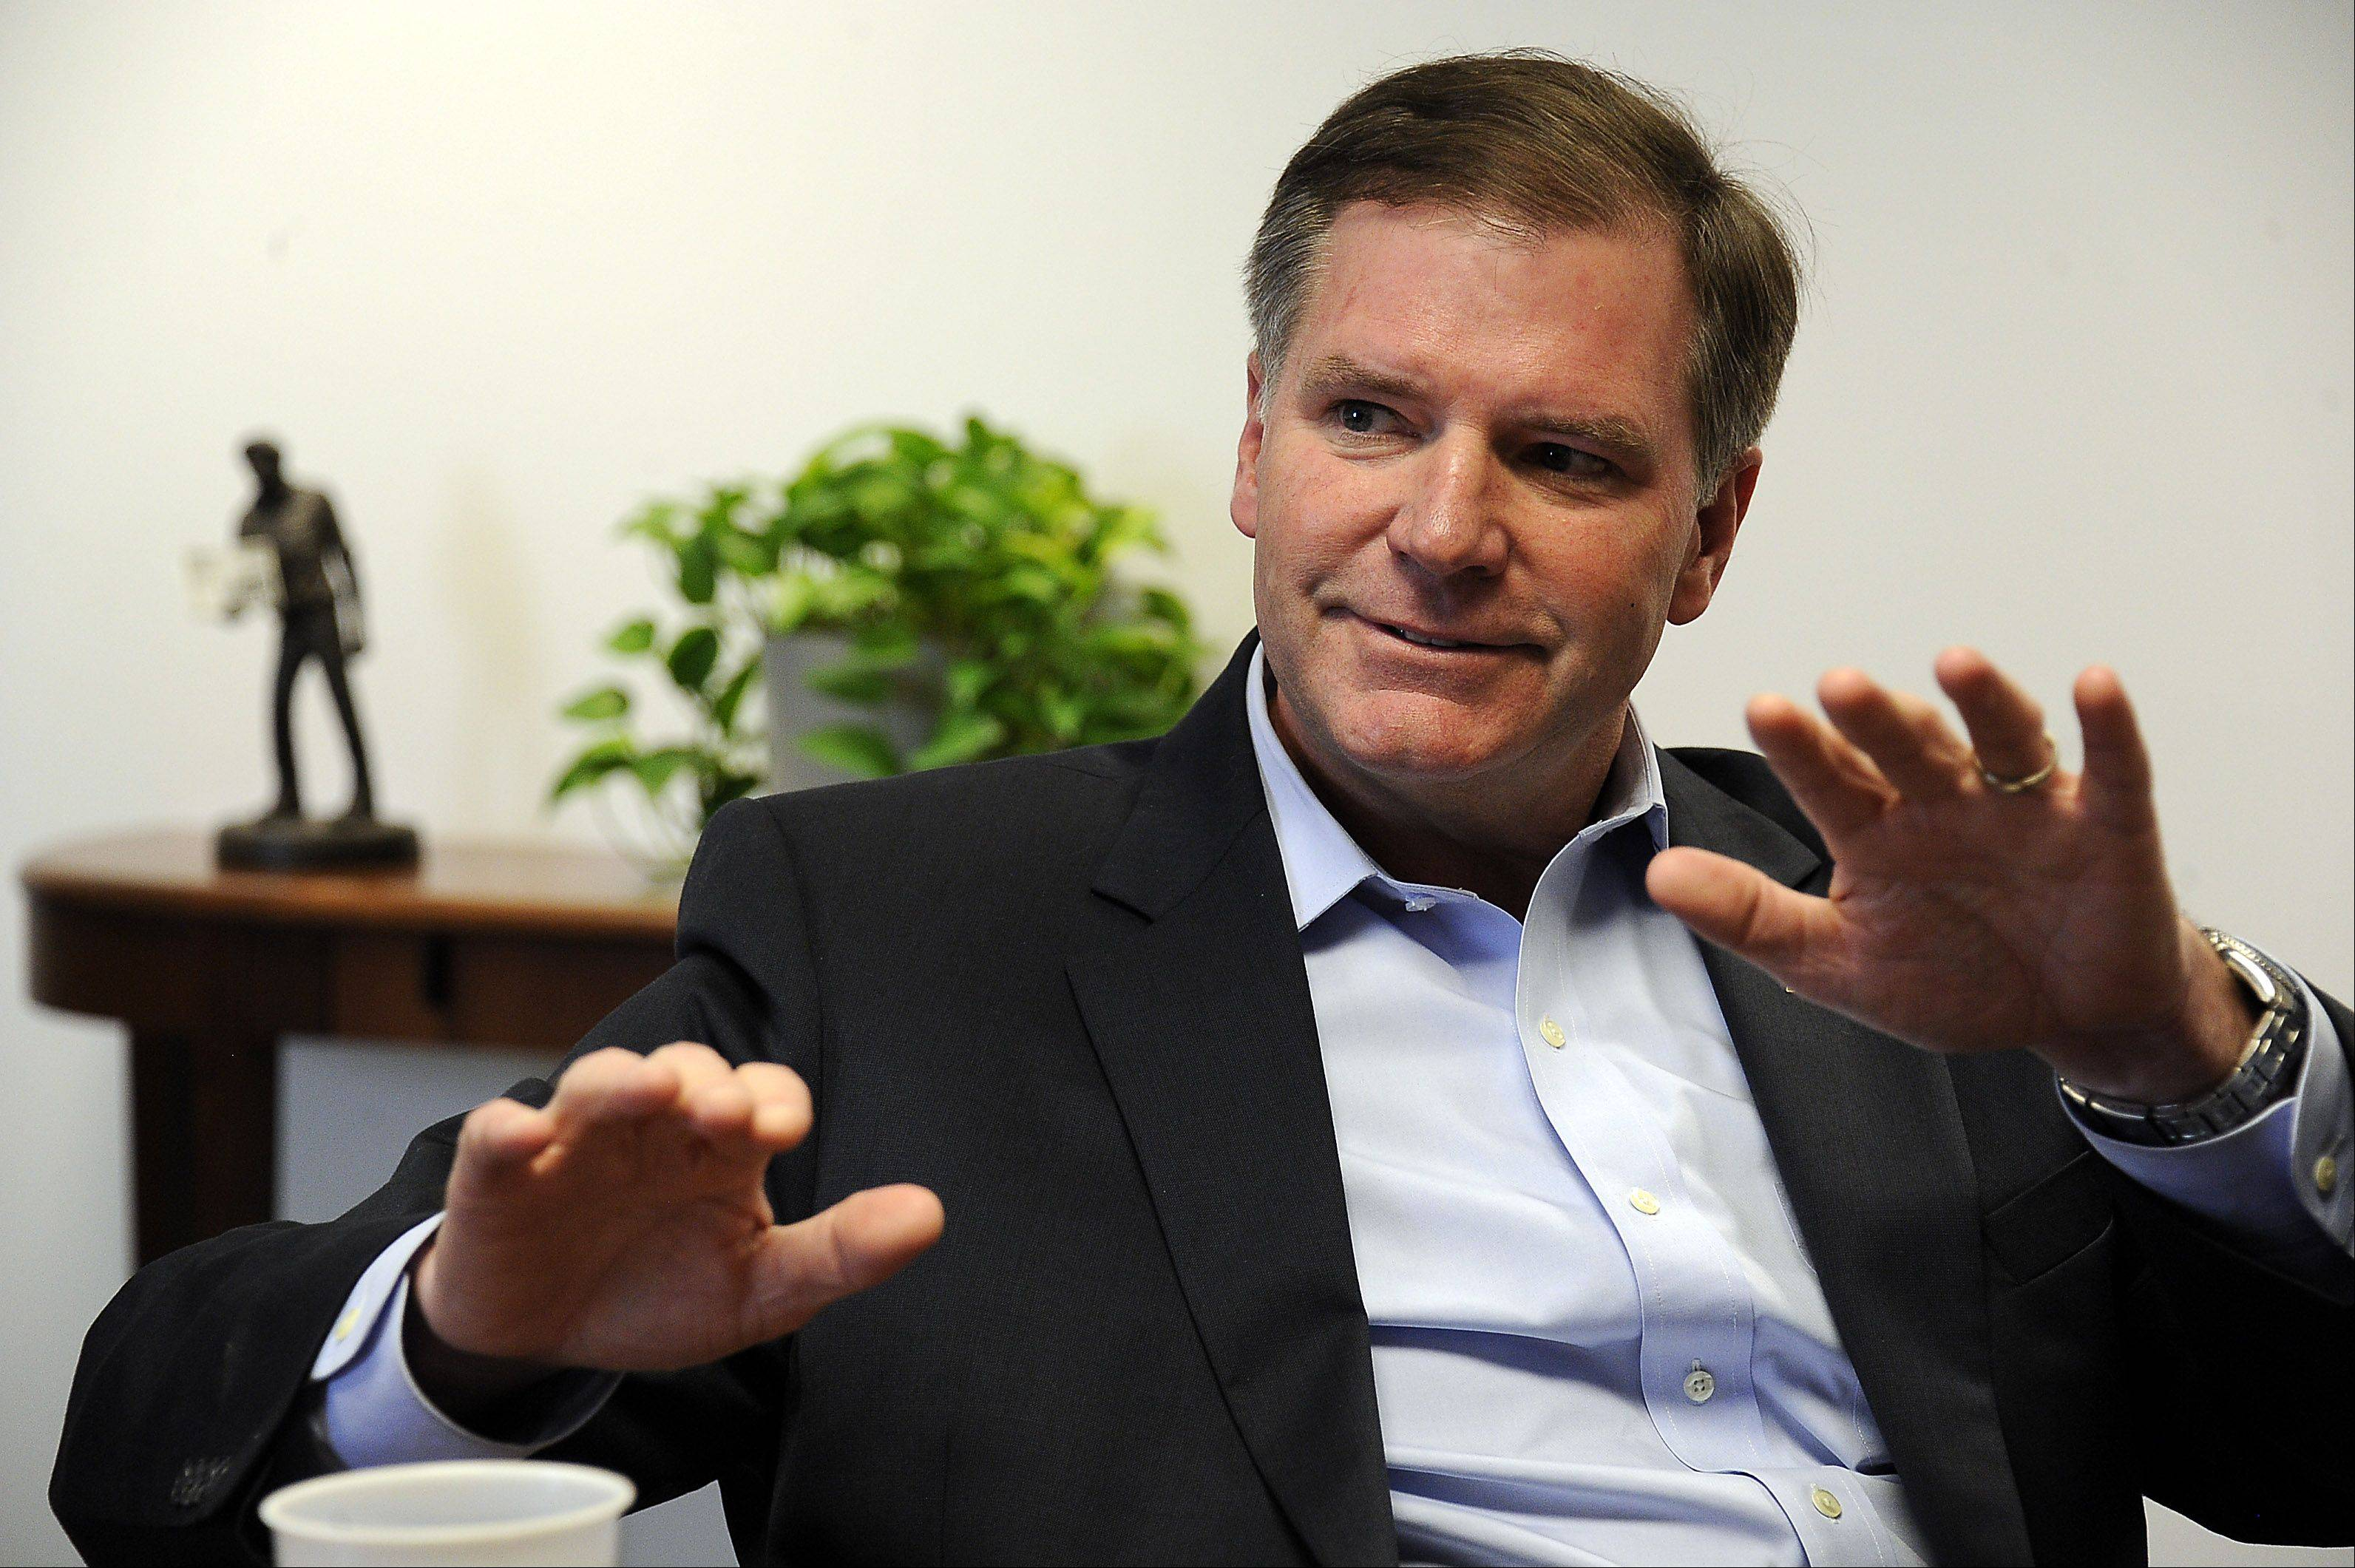 State Sen. Bill Brady, a Republican candidate for governor, met Wednesday with the Daily Herald Editorial Board.